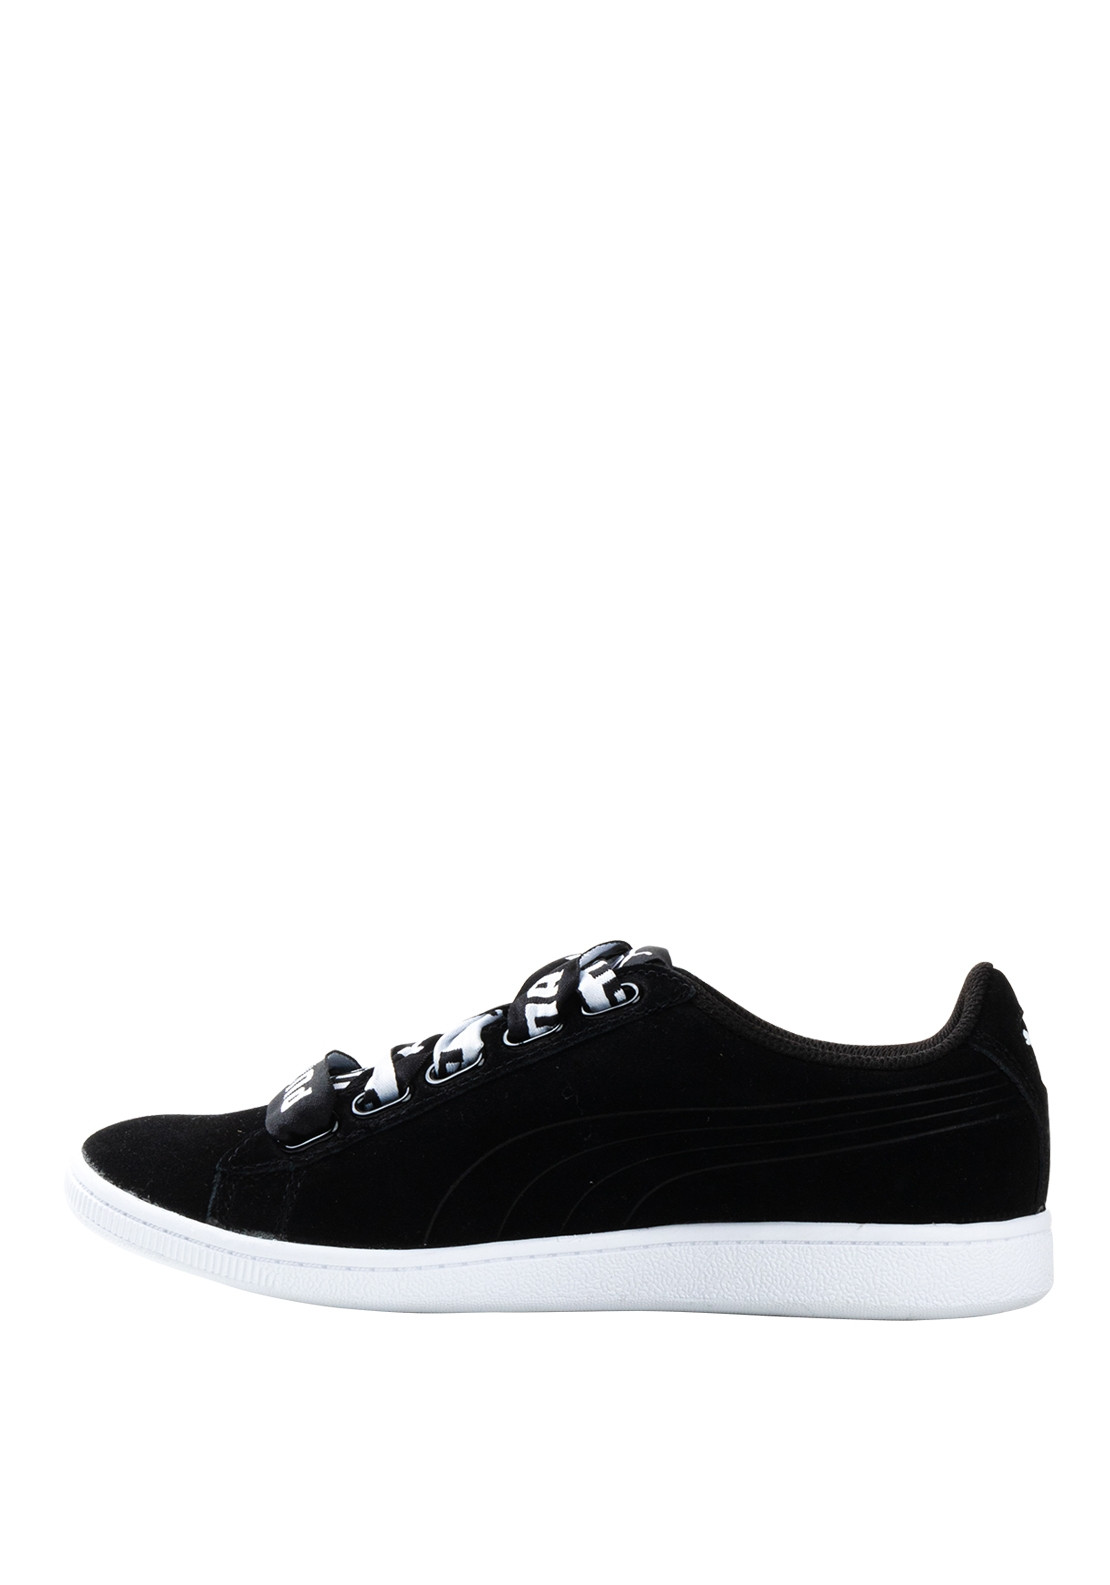 nouveaux styles db363 00e9c Puma Soft Foam Logo Lace Up Trainers, Black